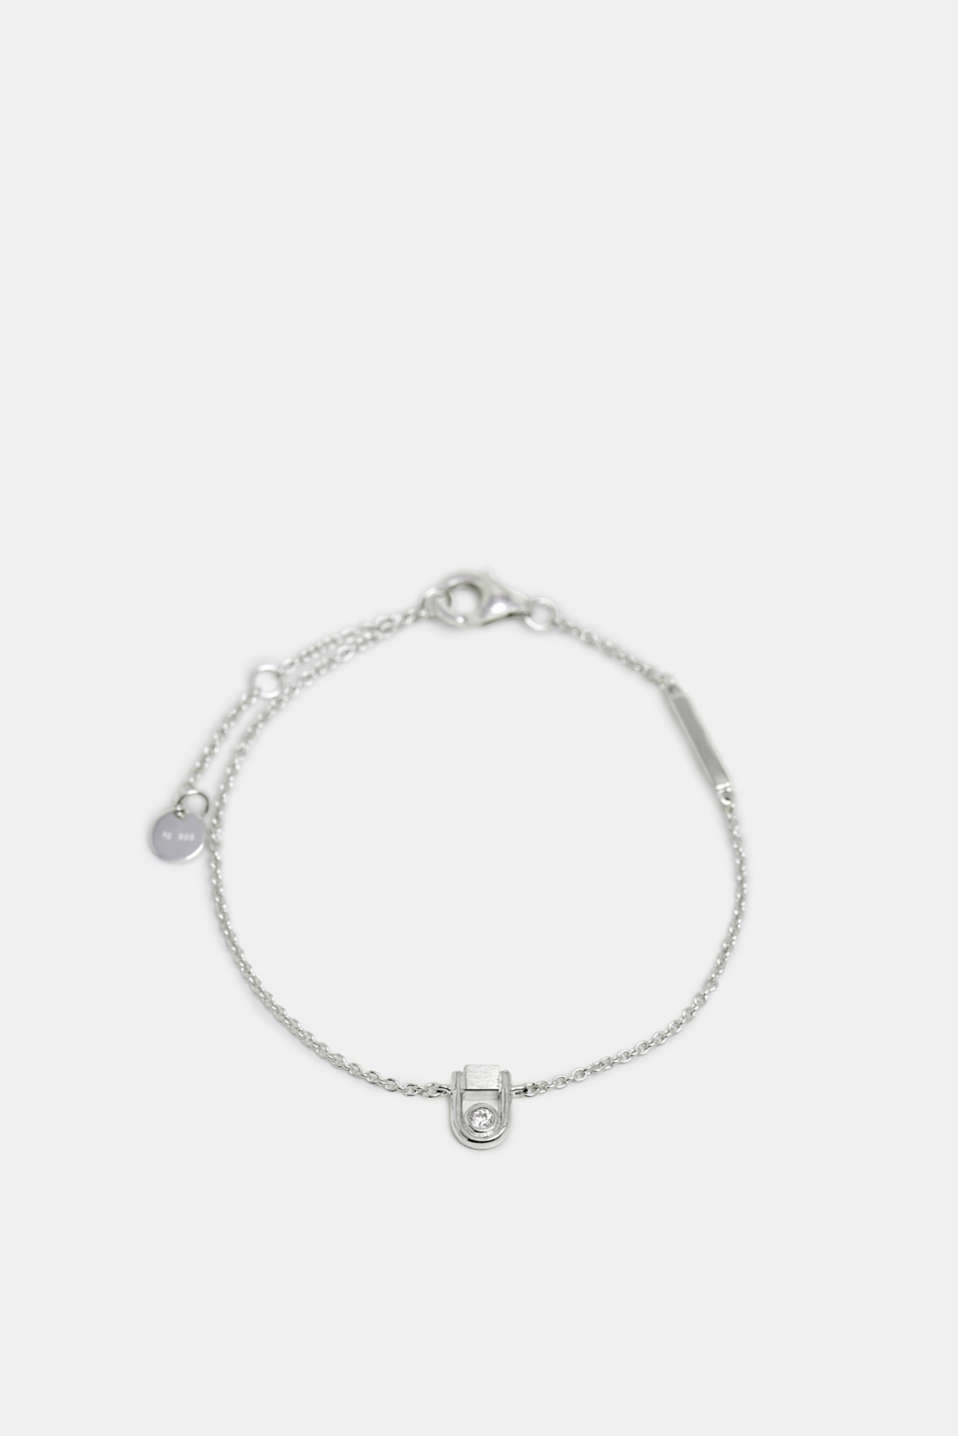 Esprit - Bracelet with zirconia charm, sterling silver